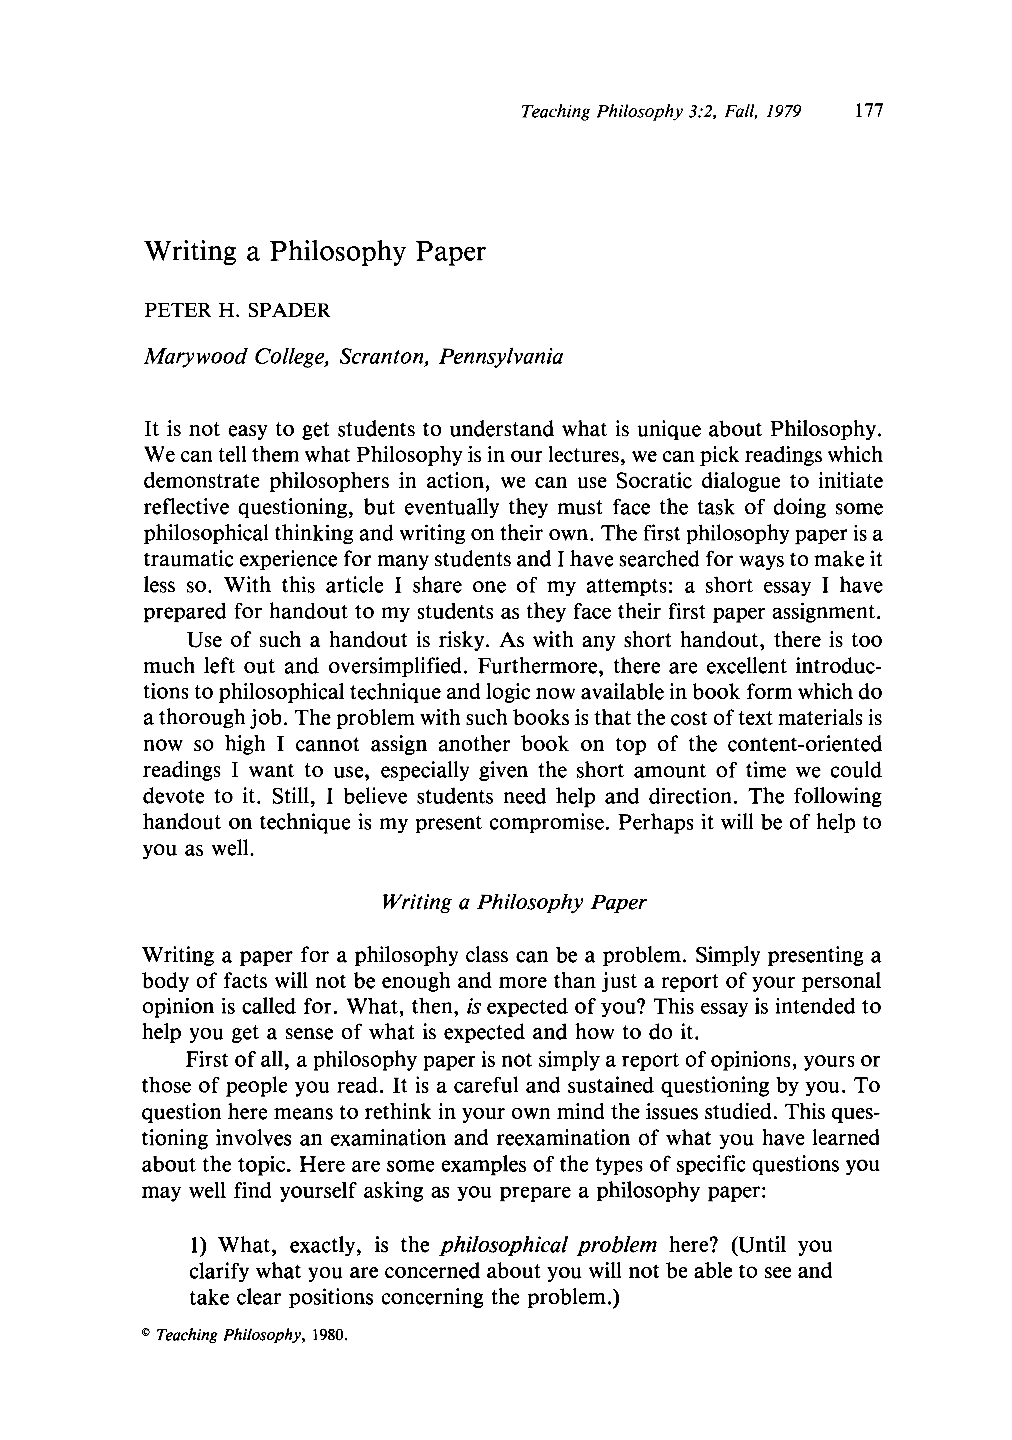 personal theory paper 2 essay Free essay: personal theory paper in partial fulfillment of the assignment submitted to dr max mills paco 507 theology and spirituality in counseling lynn.